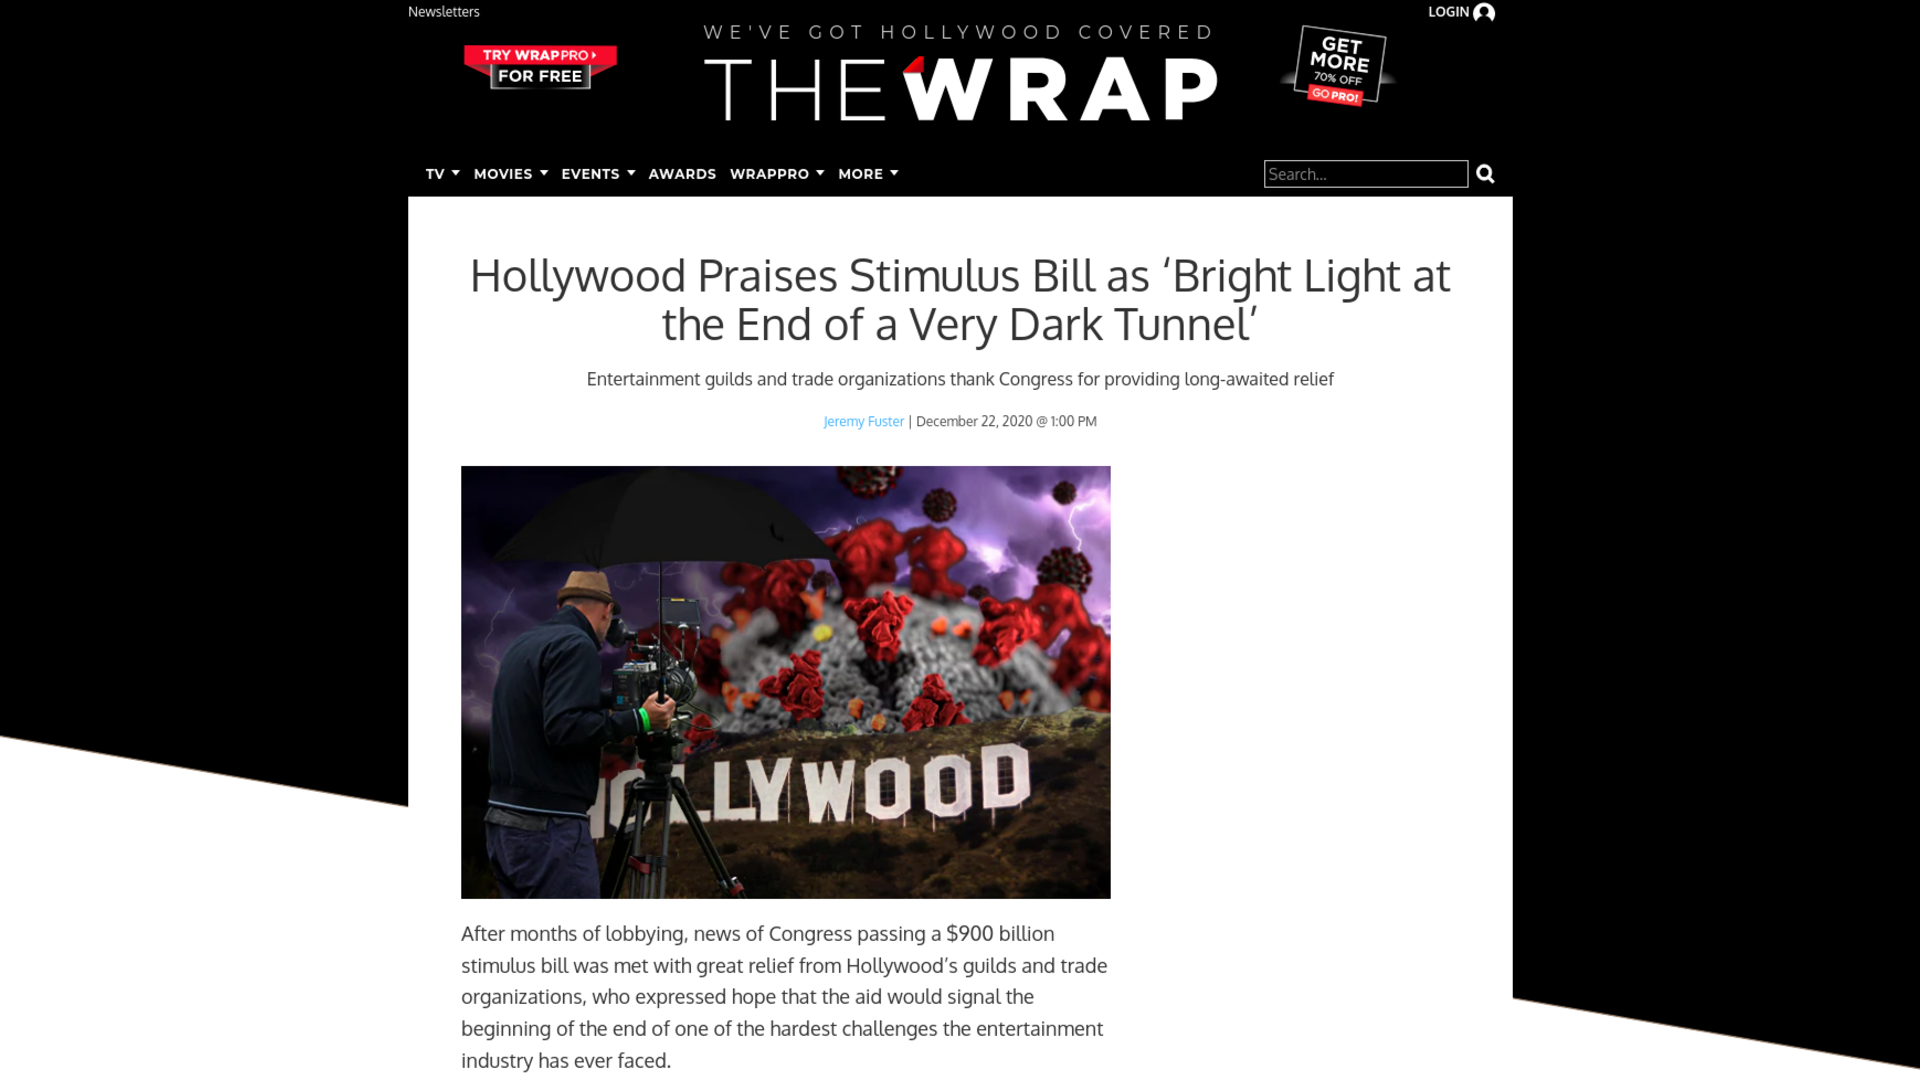 Fairness Rocks News Hollywood Praises Stimulus Bill as 'Bright Light at the End of a Very Dark Tunnel'